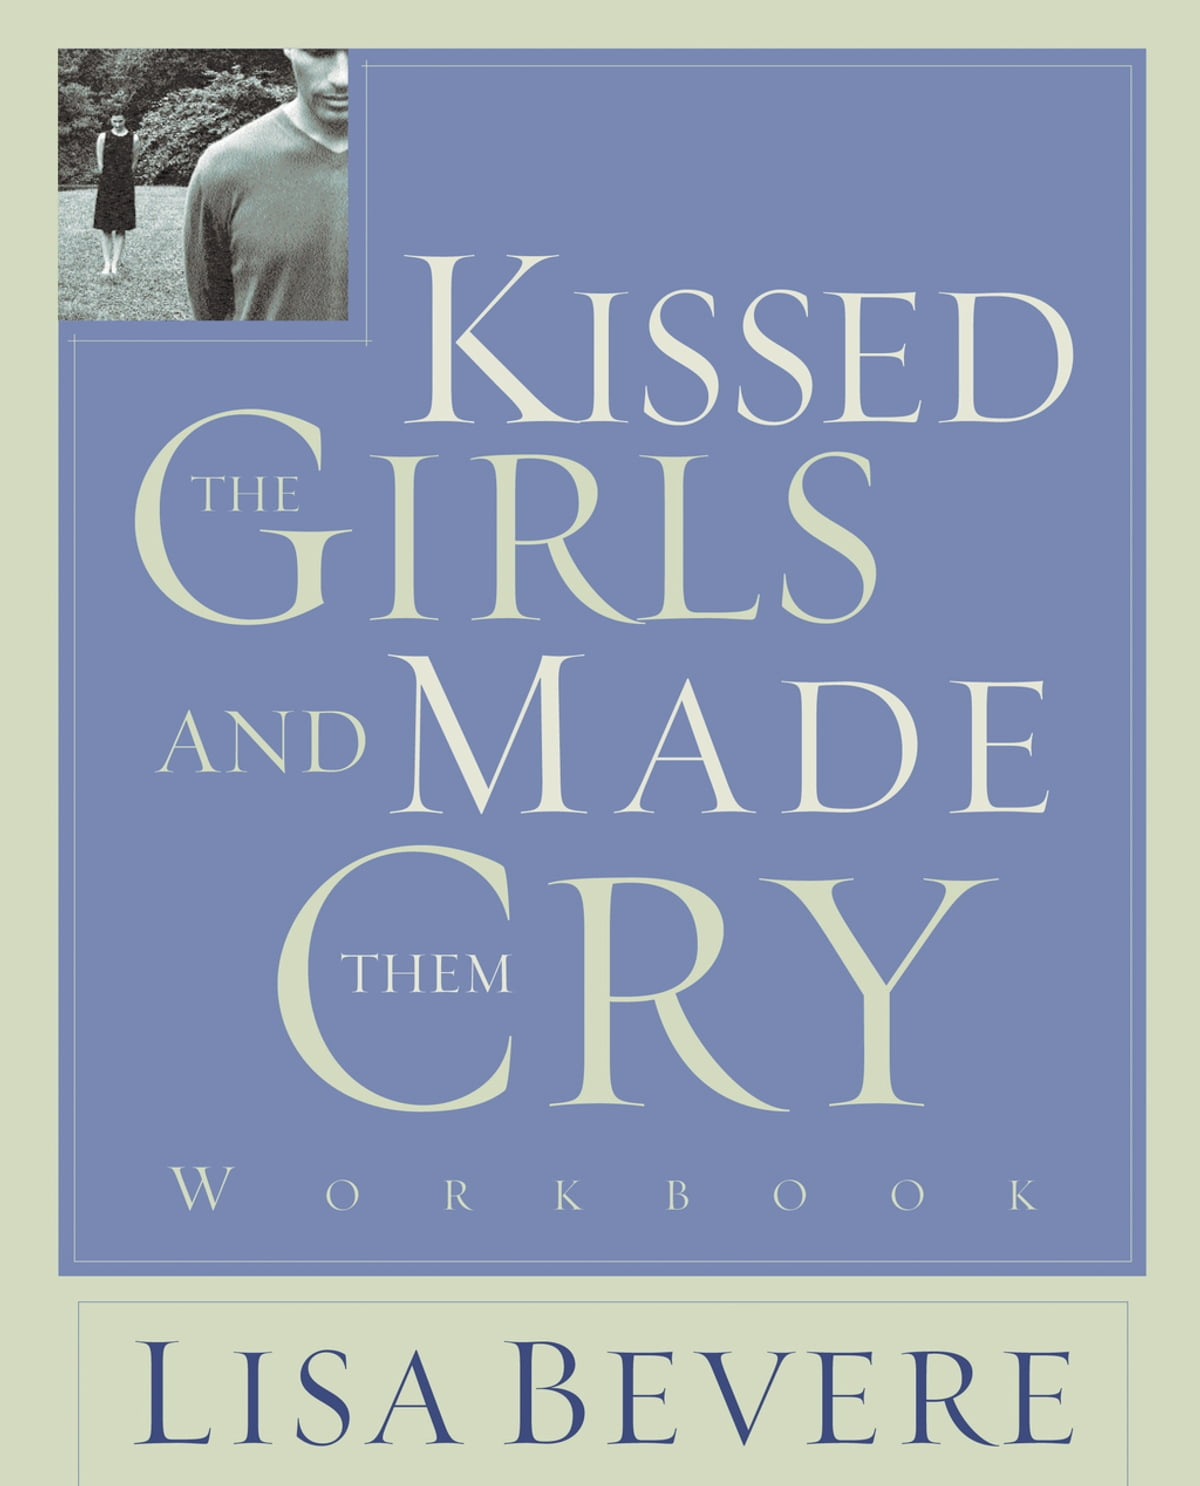 Kissed the Girls and Made Them Cry Workbook eBook by Lisa Bevere ...